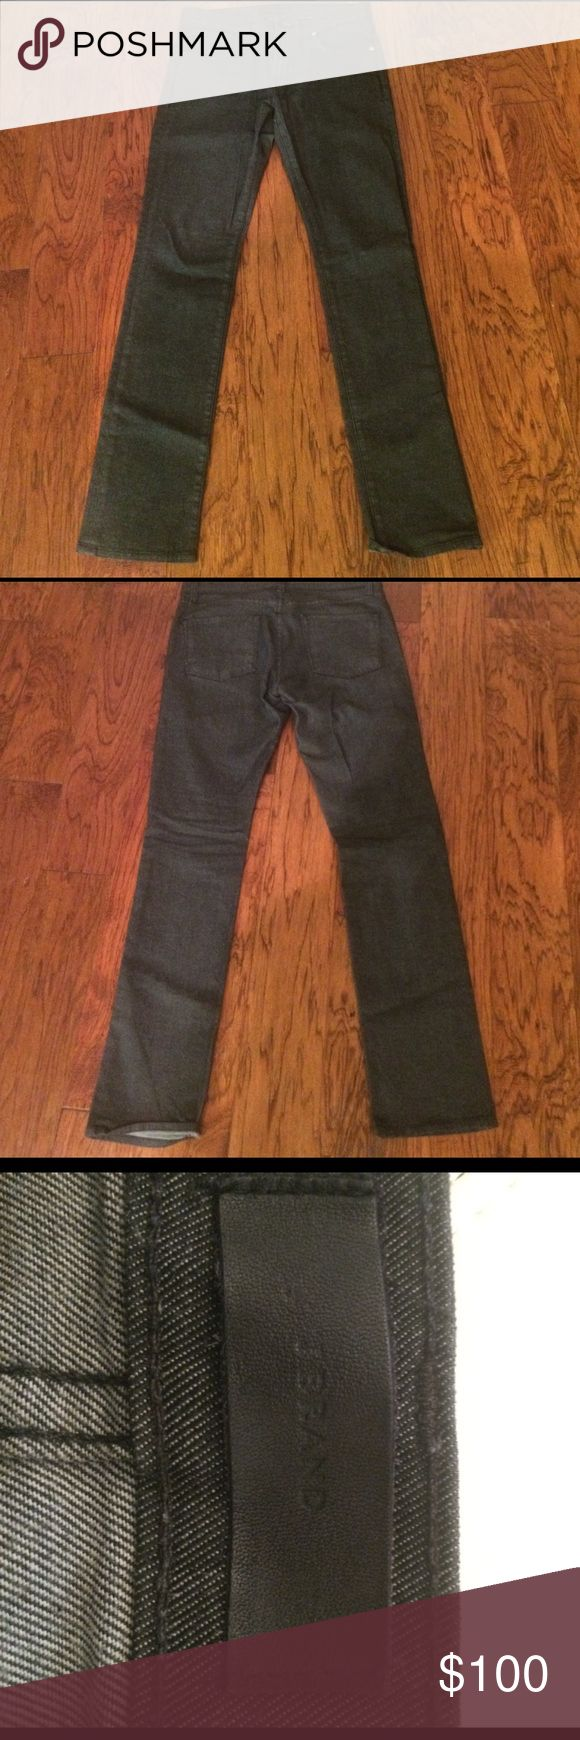 J BRAND -Kane Slim Straight Leg Raw Jeans (Abrams) J BRAND -Kane Slim Straight Leg Raw Jeans (Abrams) - Size 31 PERFECT CONDITION! J Brand Jeans Slim Straight